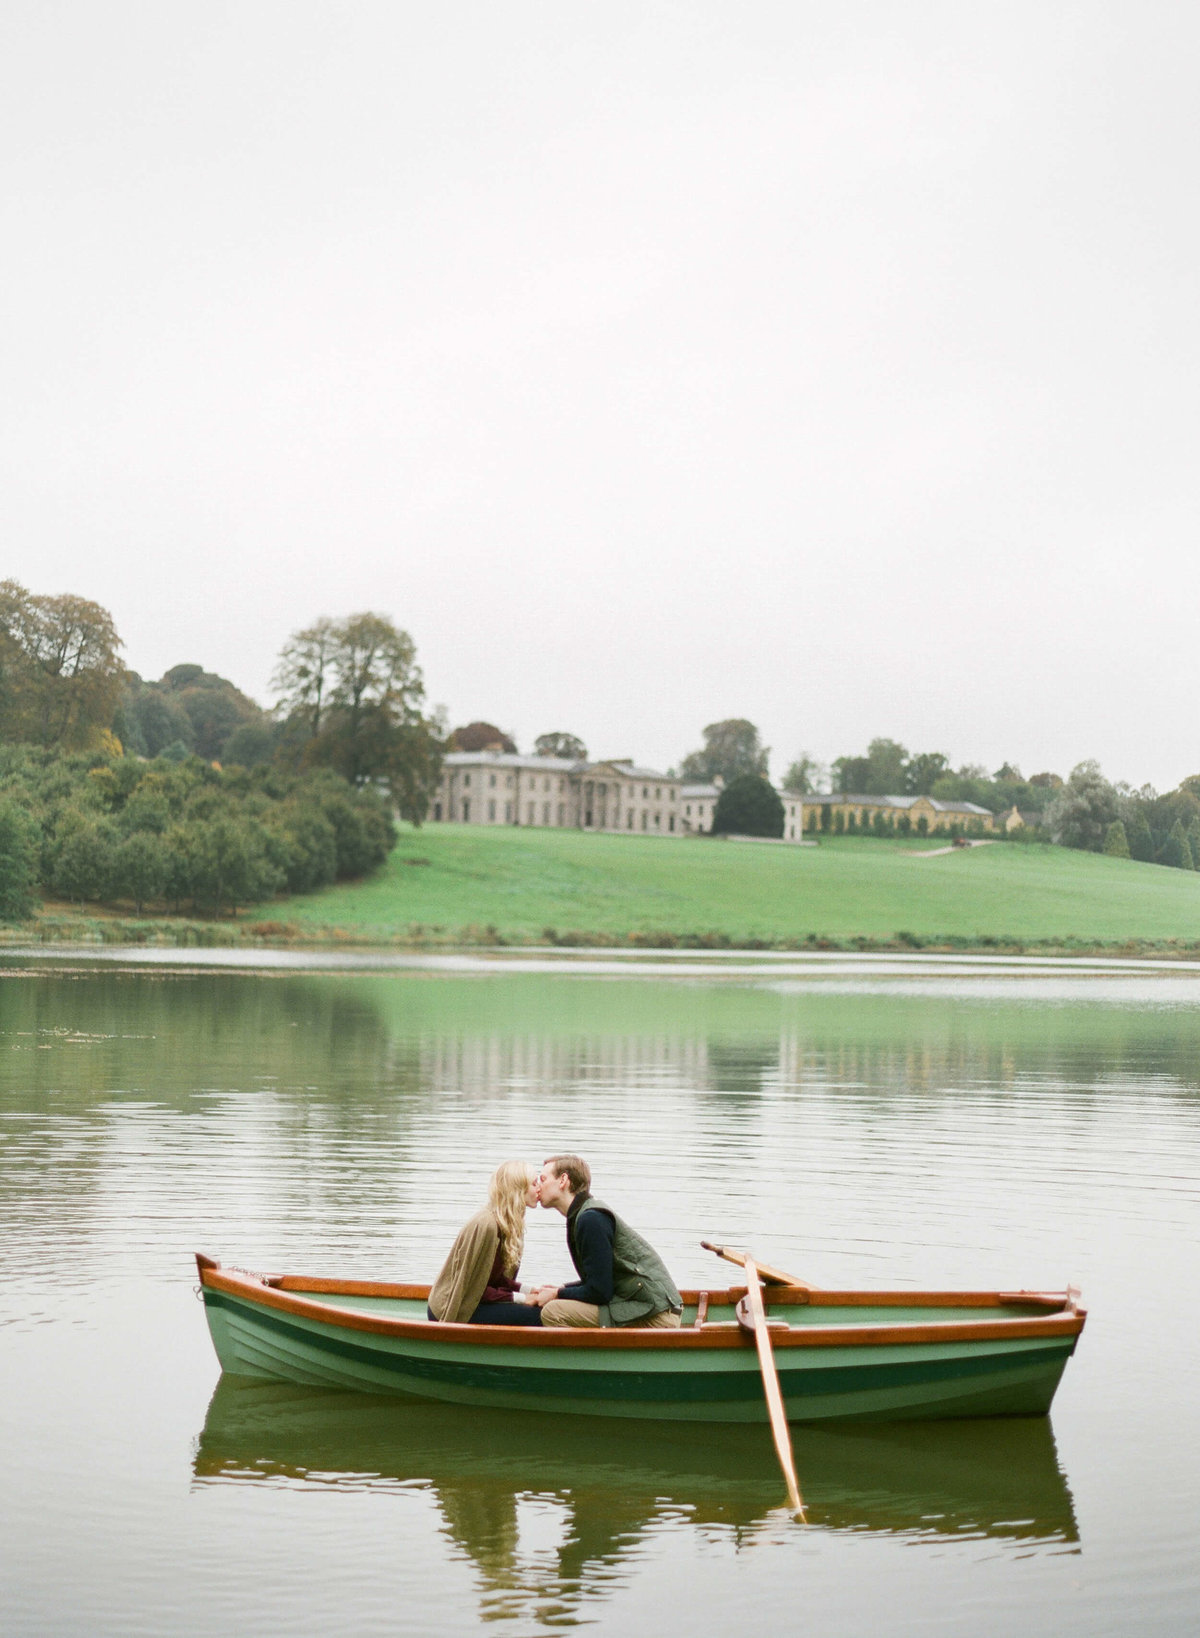 14-KTMerry-destination-weddings-Ireland-Ballyfin-couple-boating